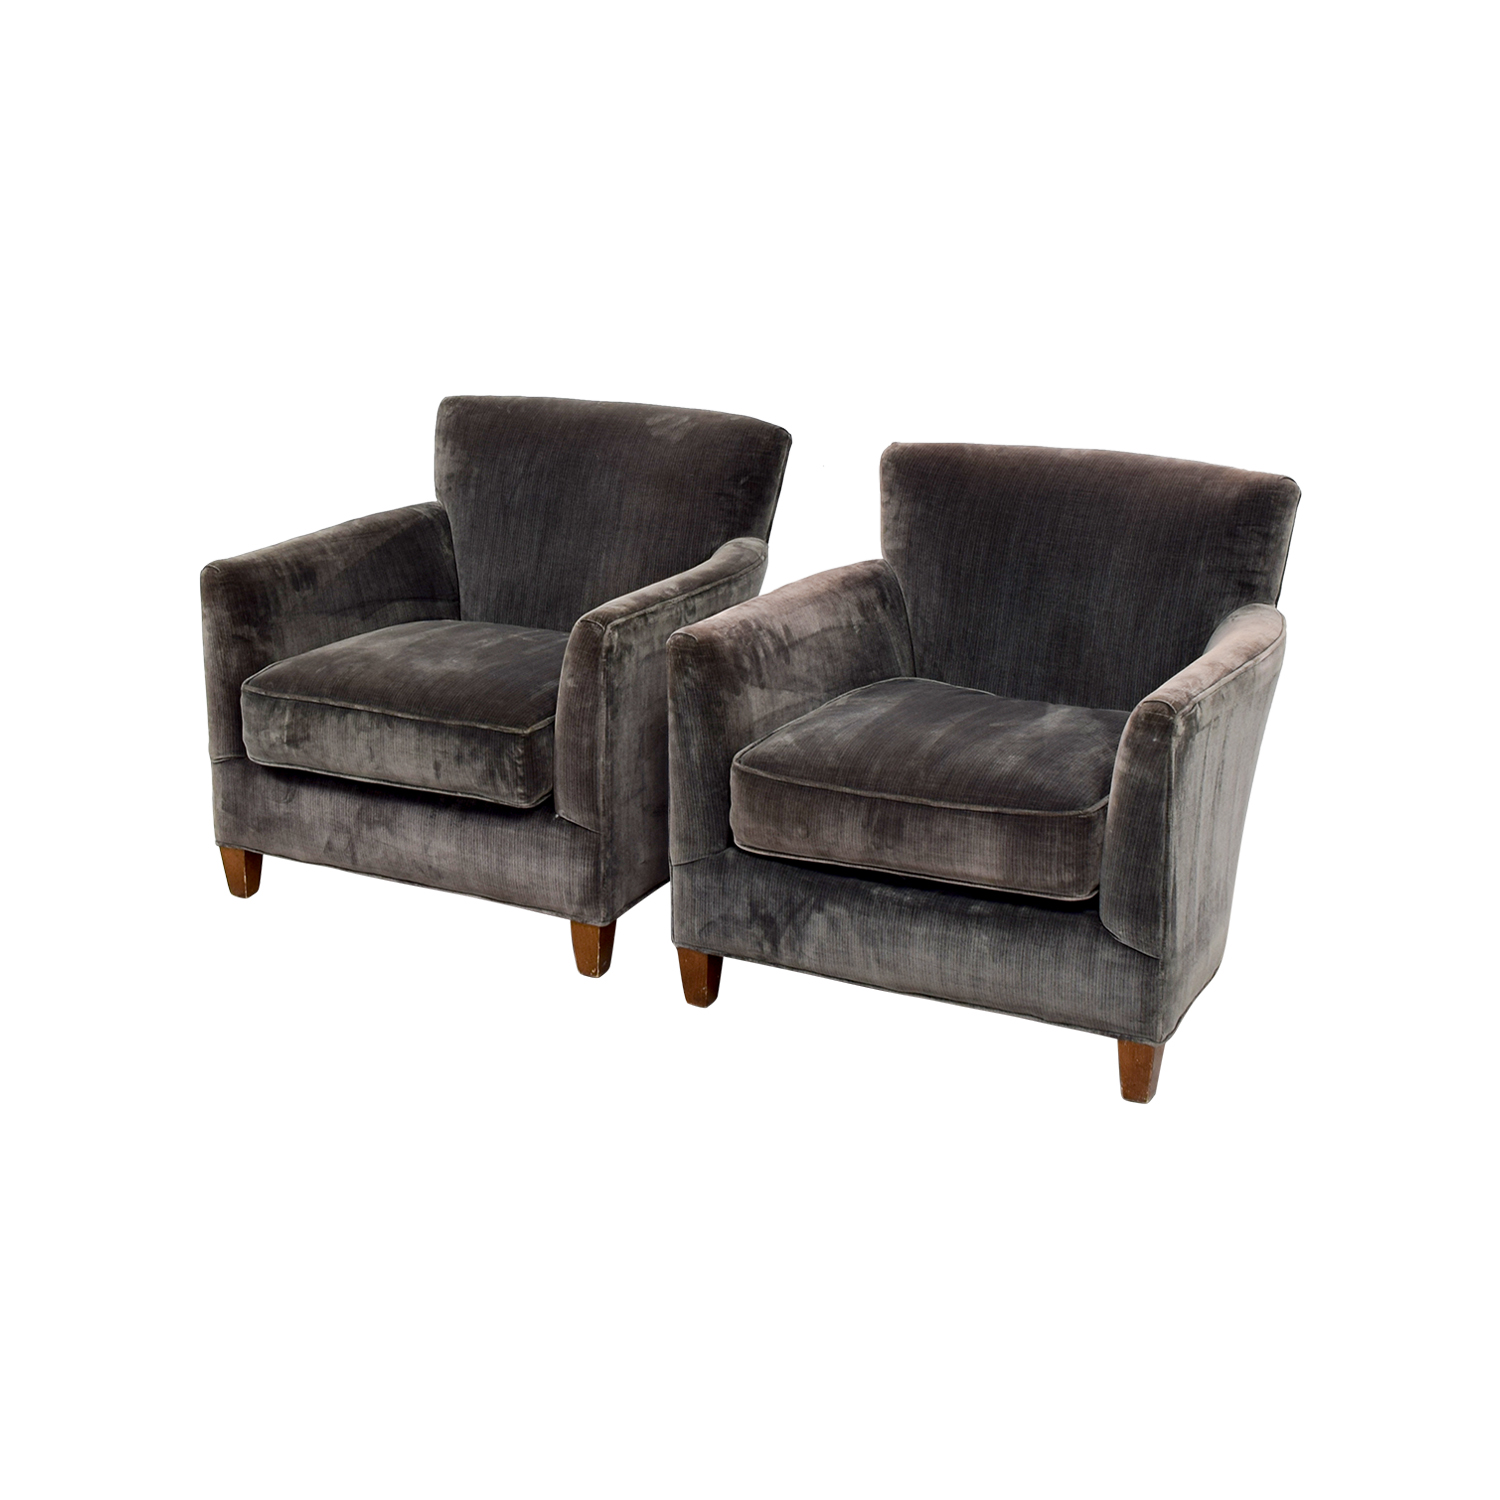 Lee Lee Dark Green Velvet Accent Chairs / Chairs